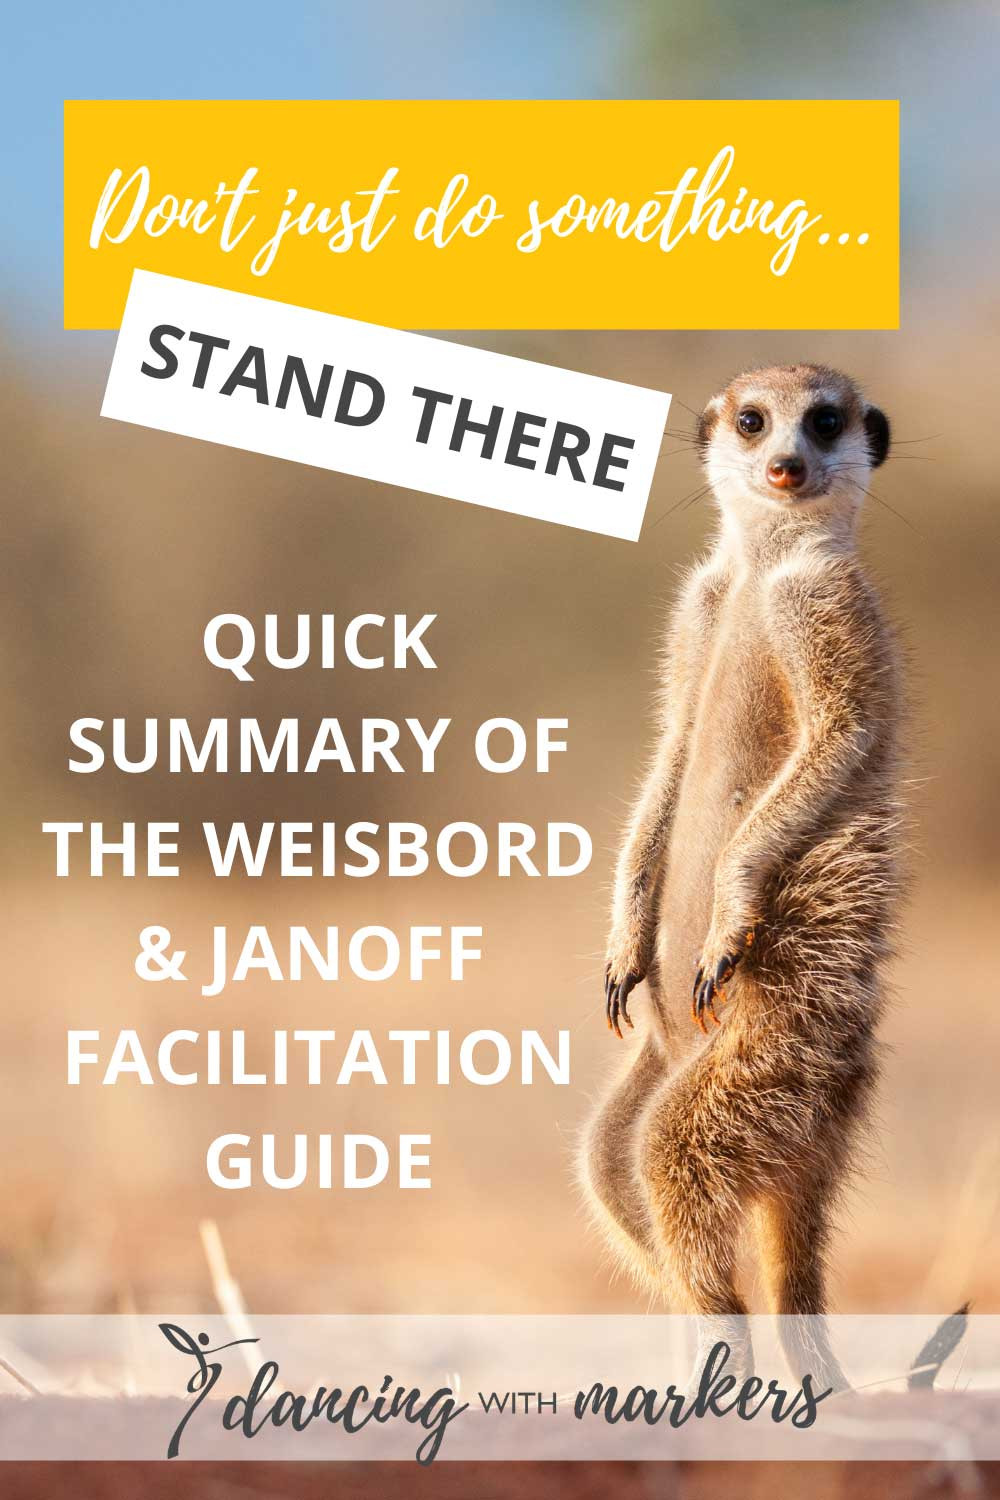 facilitation guide - don't just do something stand there